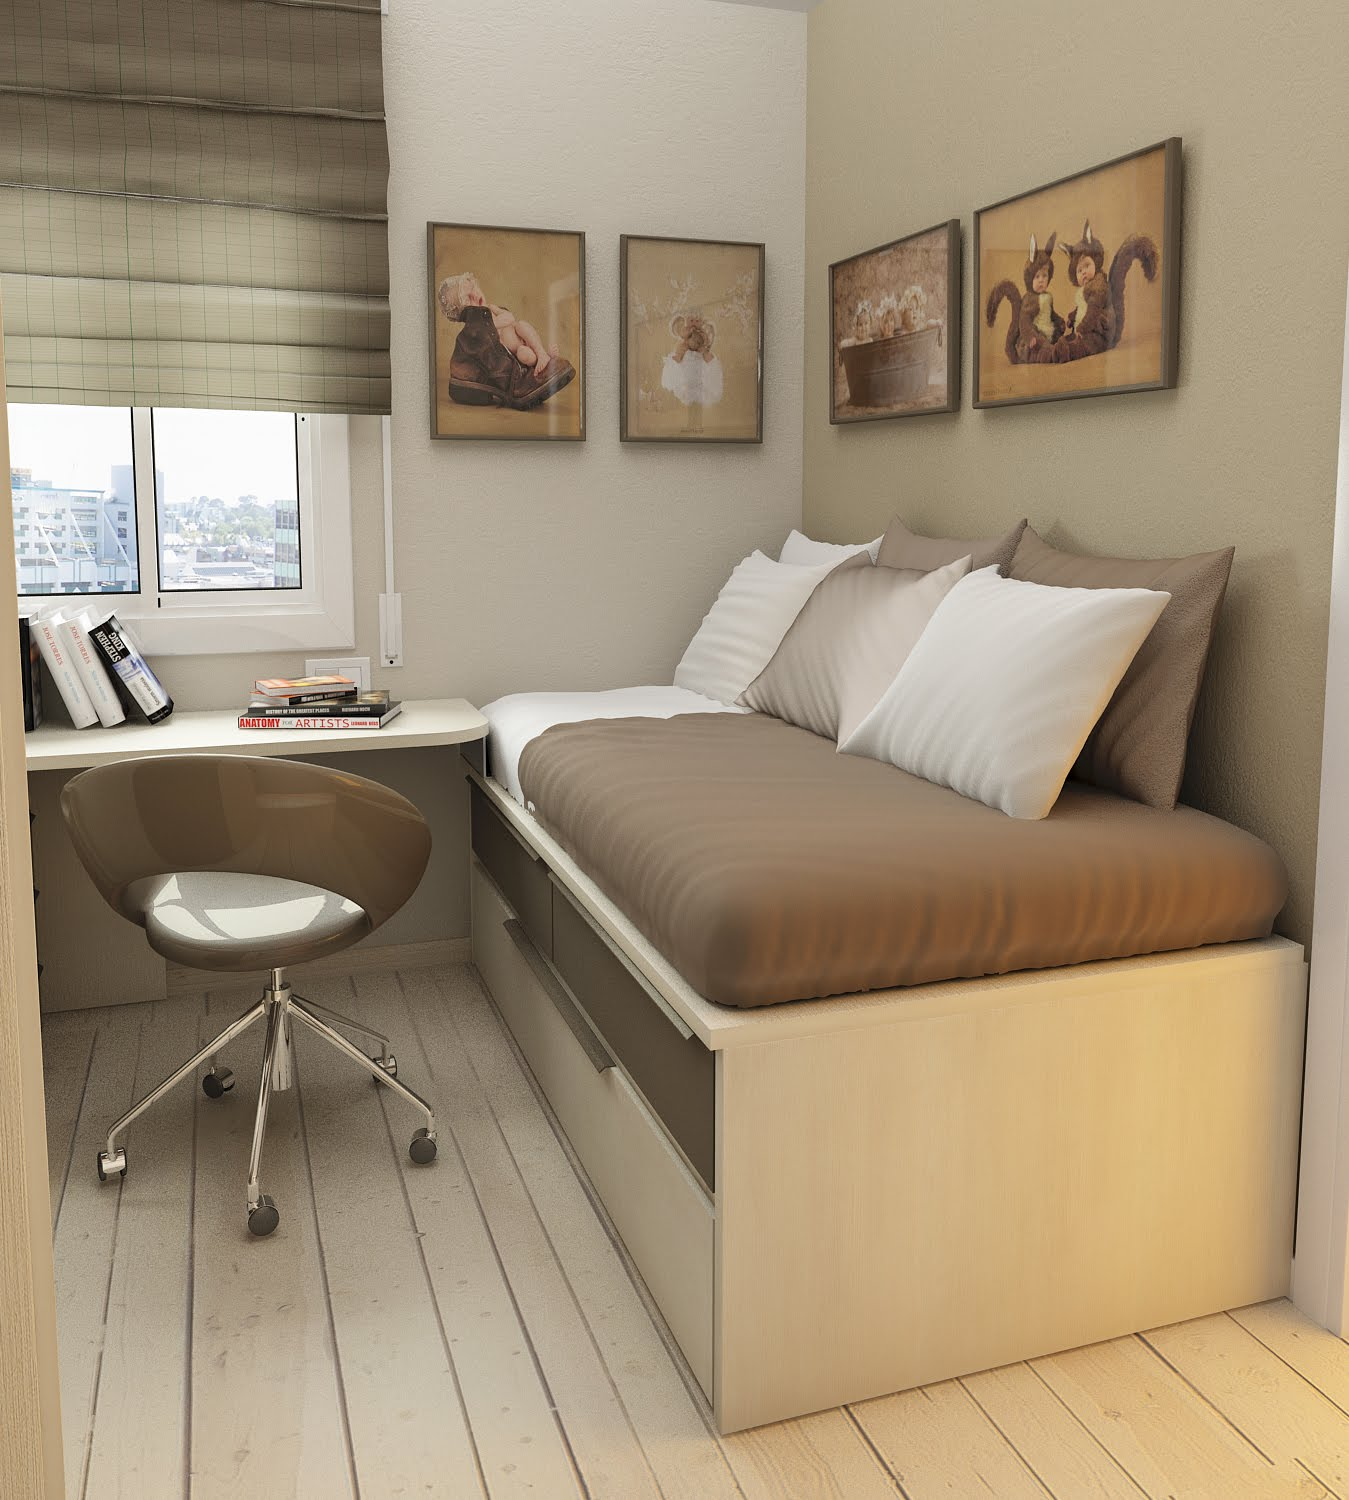 Add Artistic Wall Arts Above Single Storage Bed And Floating Table Inside Small  Room Ideas